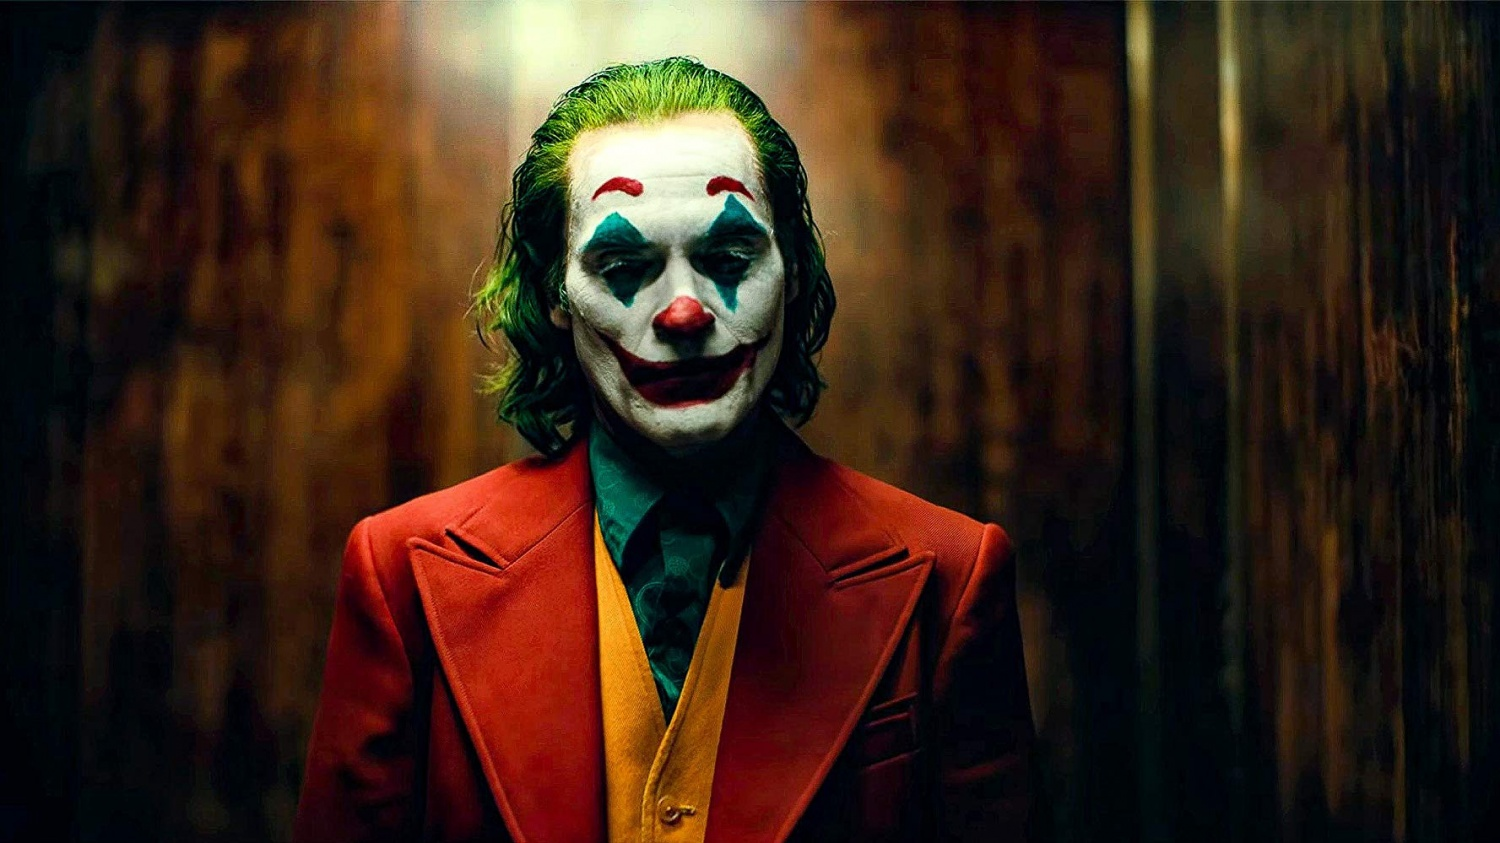 [Scam Alert] 'Joker' is the Most Abused Film of the Year Says Report